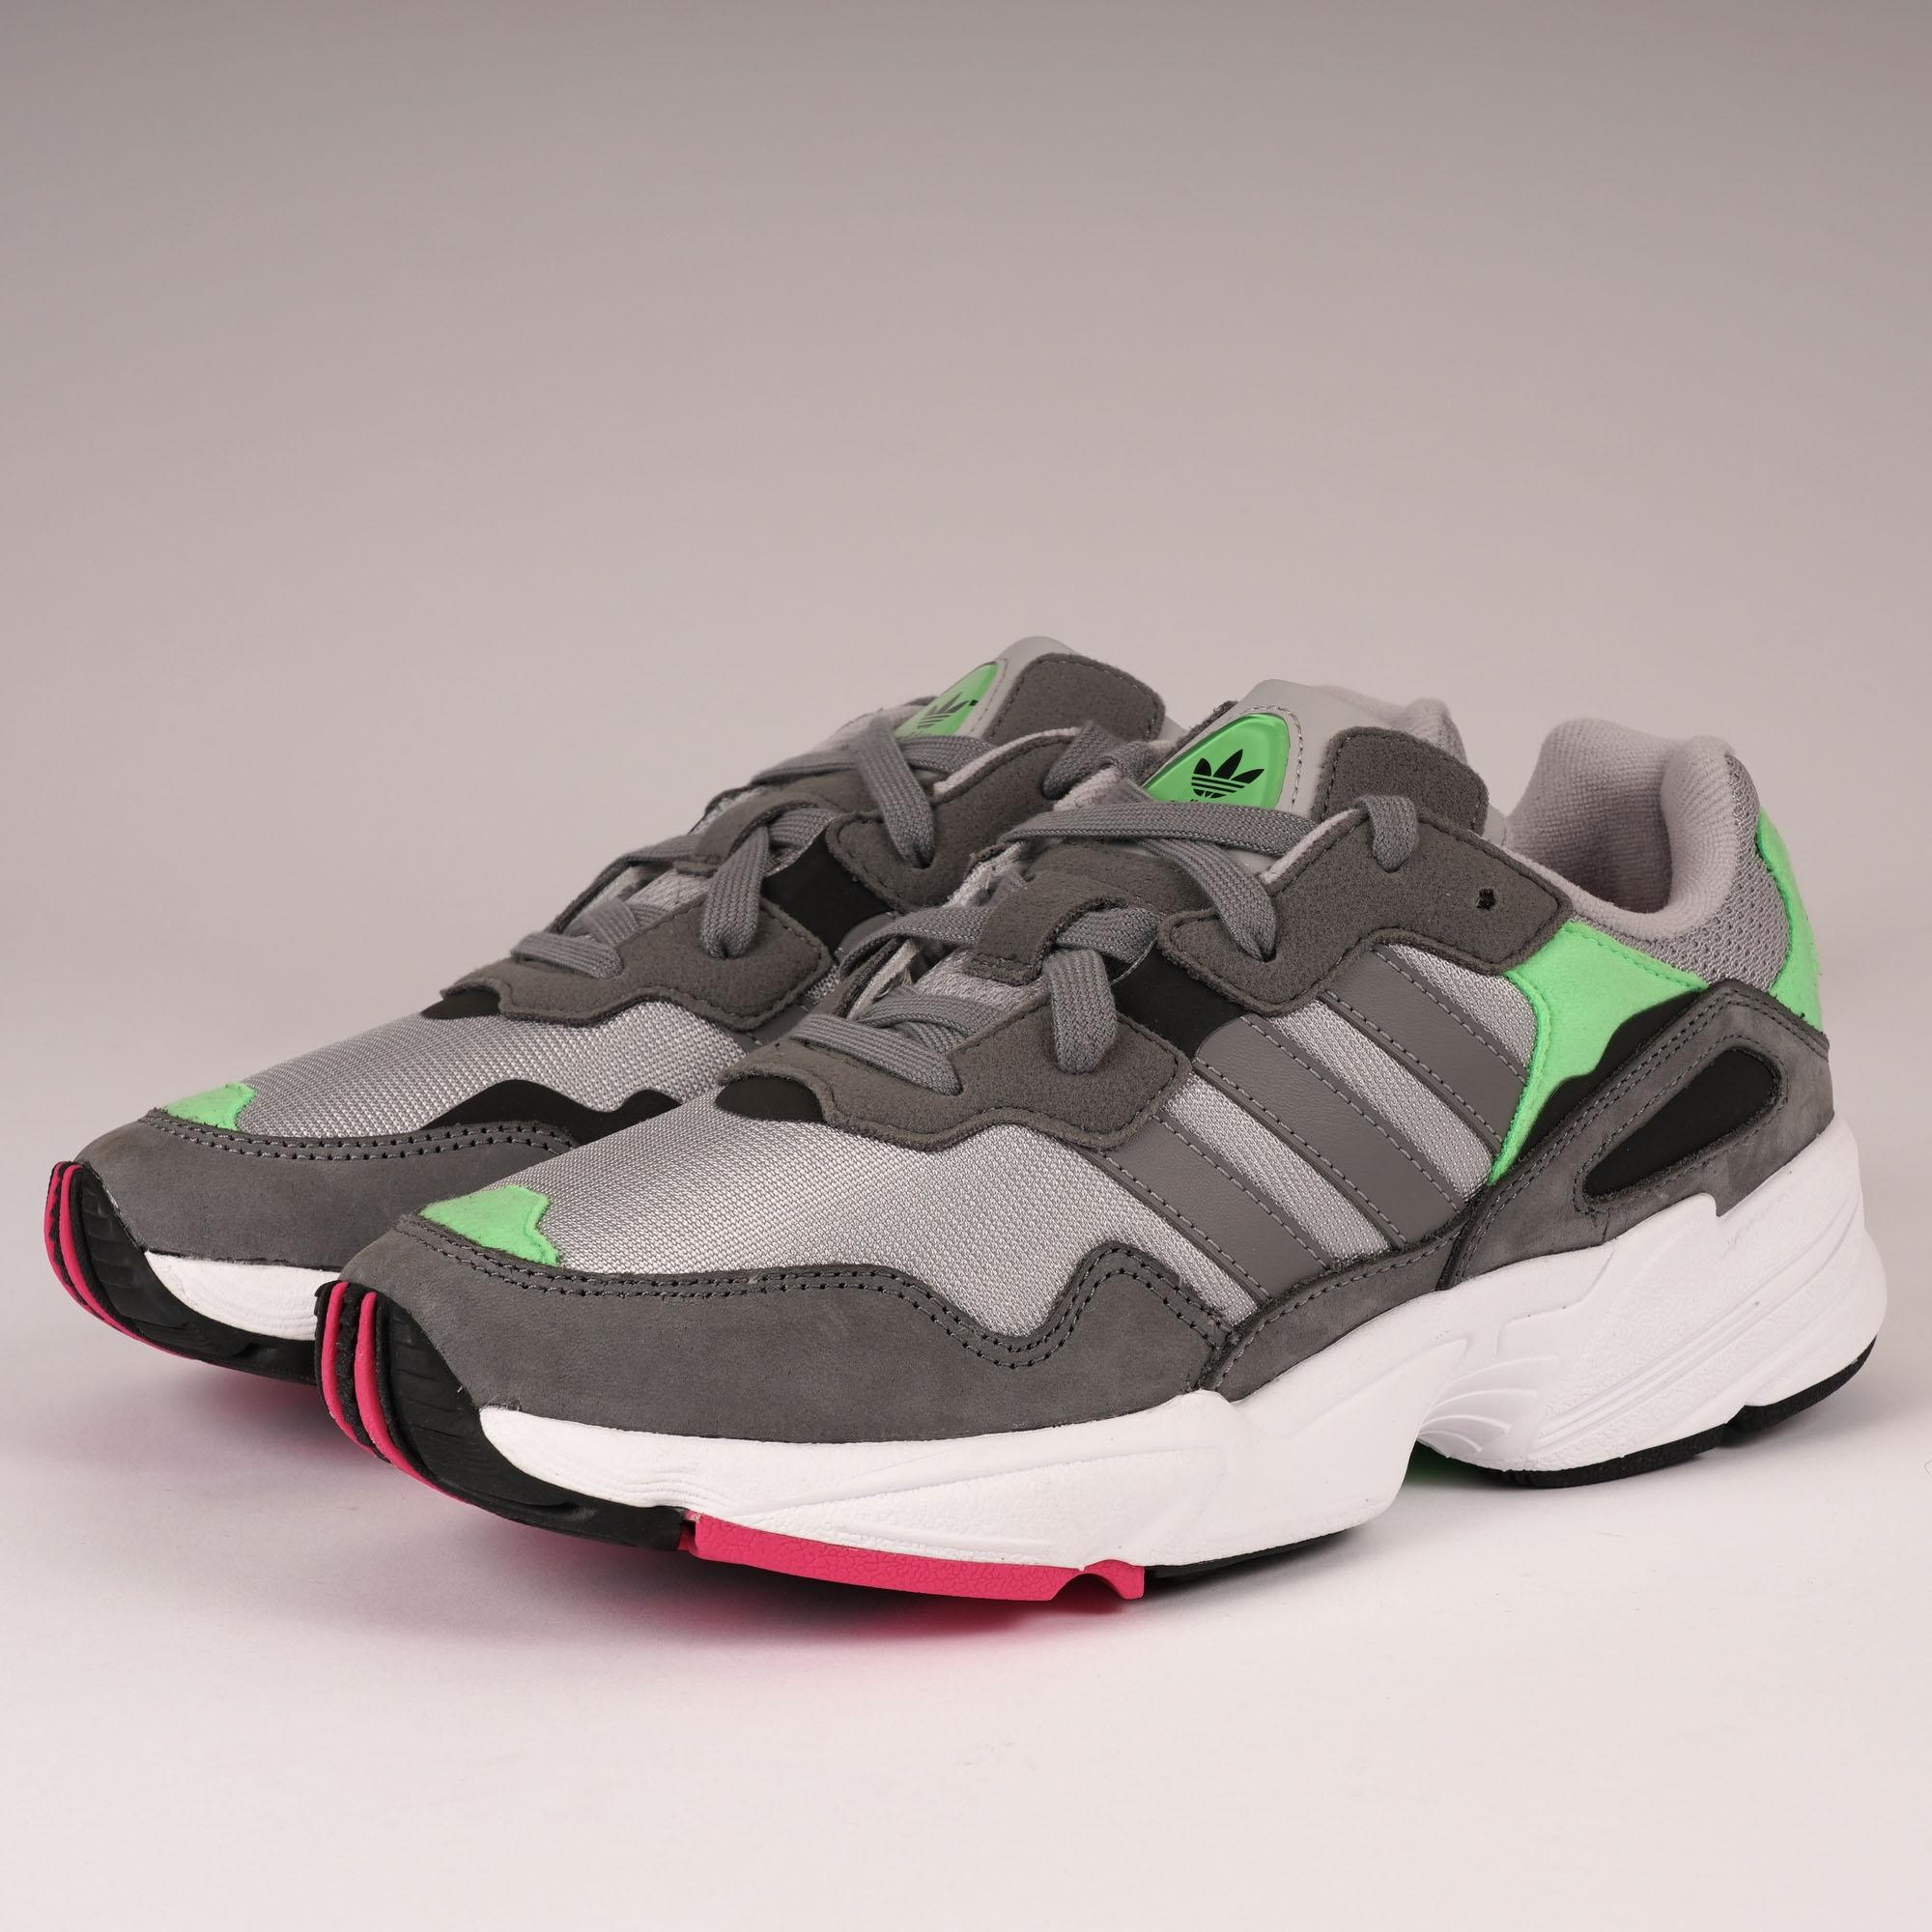 Lyst - adidas Originals Yung-96 for Men abdcb3582